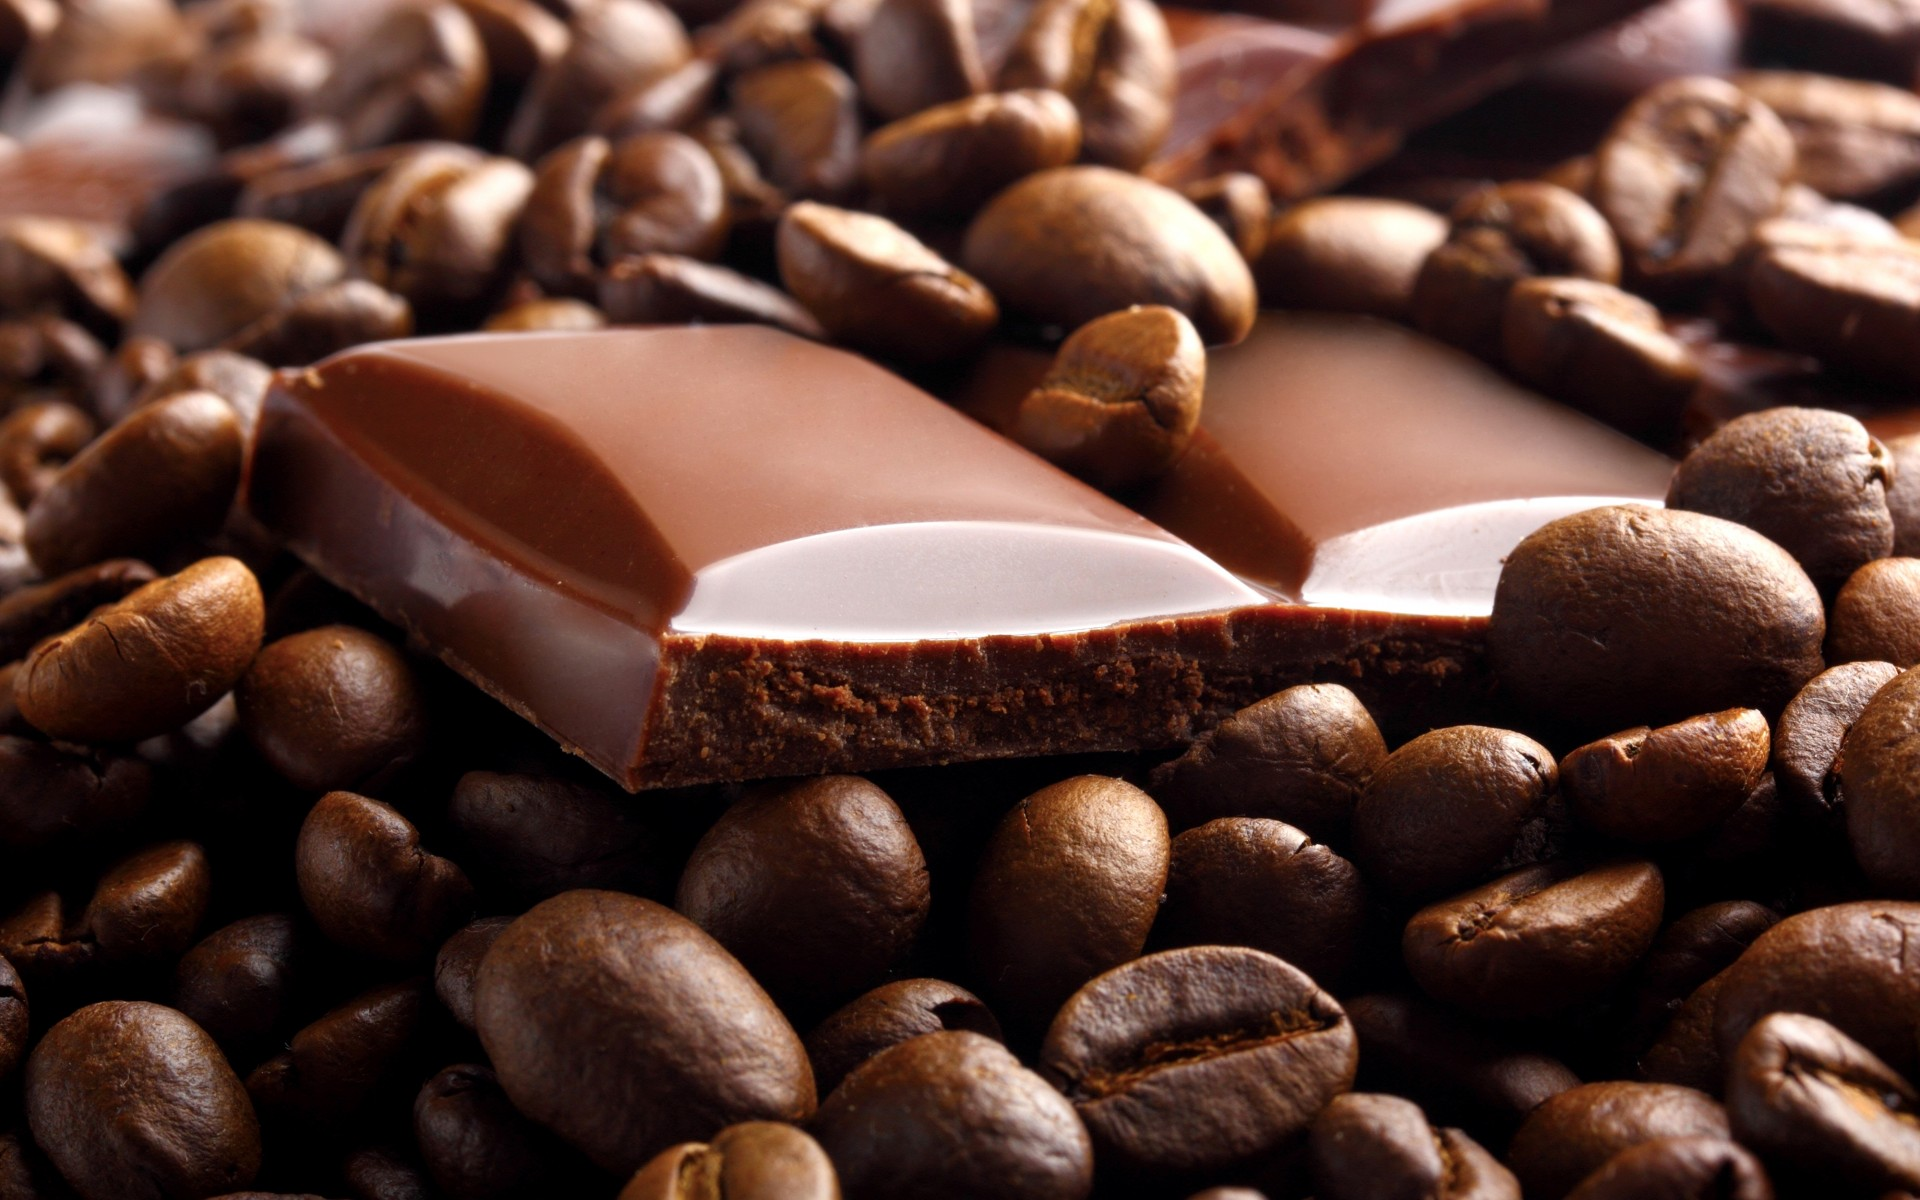 chocolate, coffee beans, breakfast